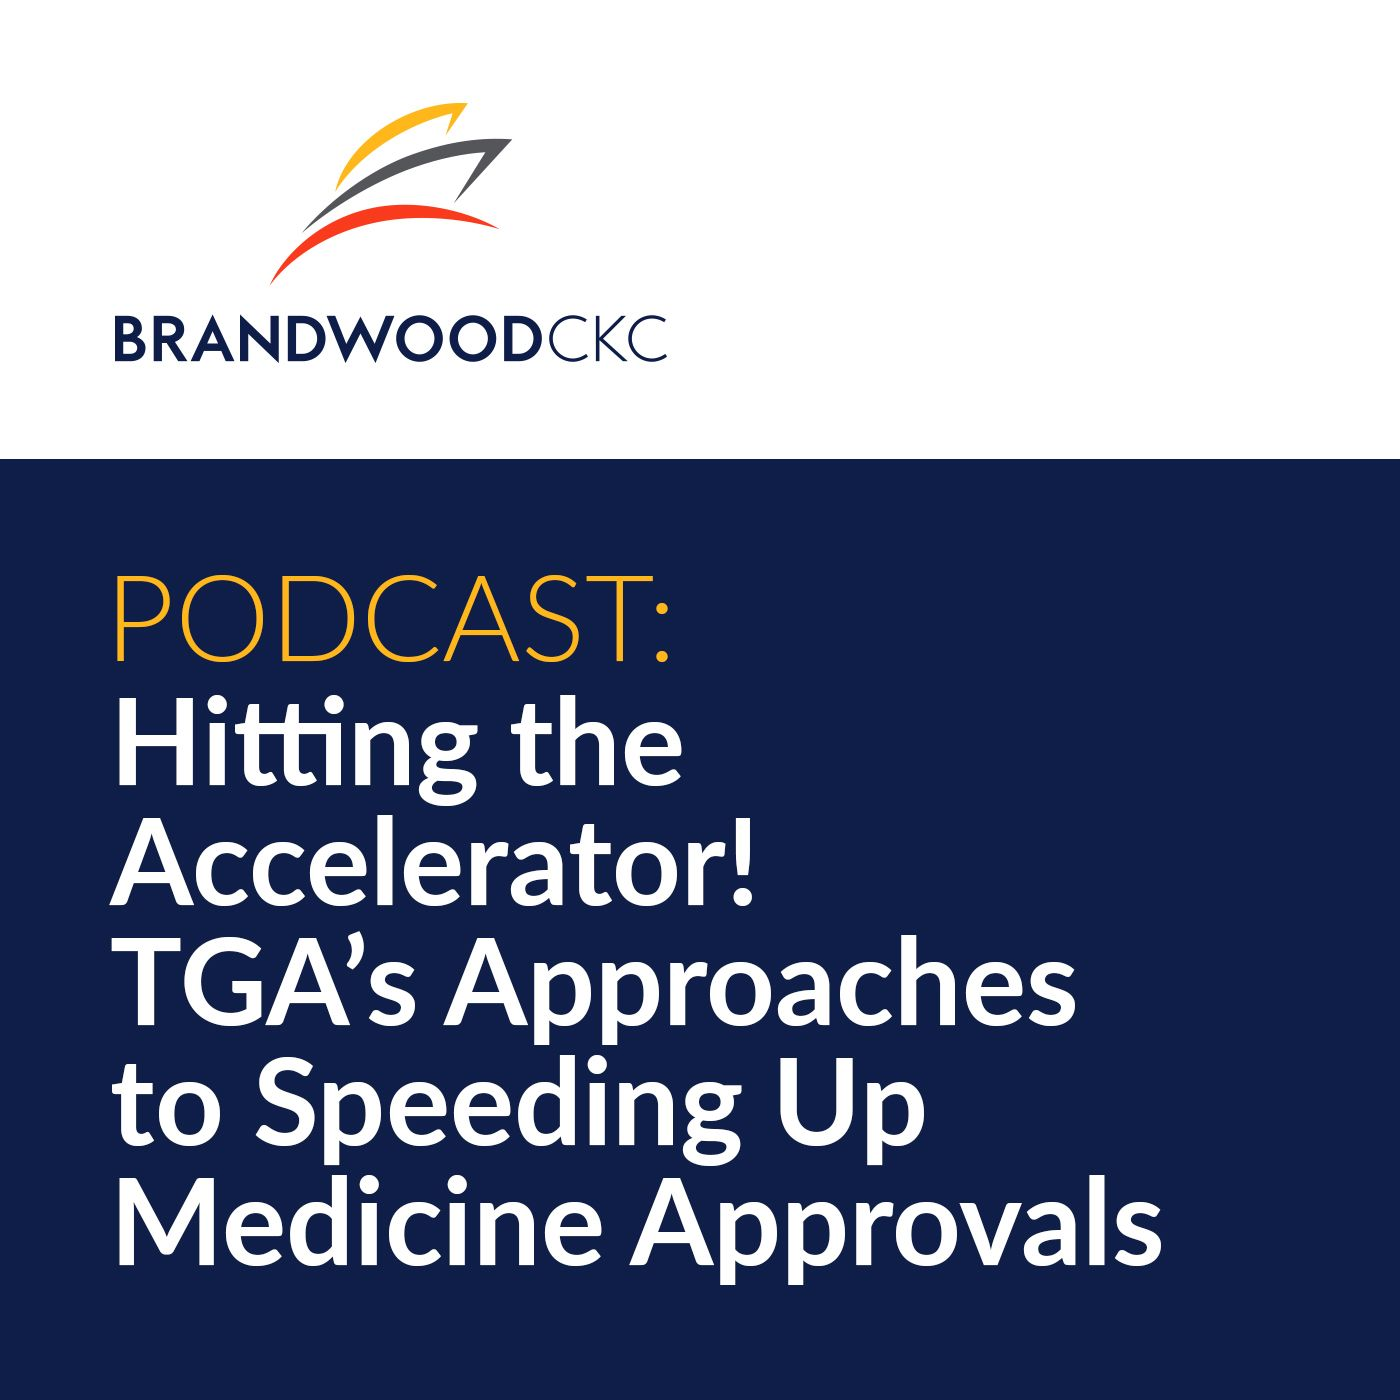 Hitting the Accelerator! TGA's Approaches to Speeding Up Medicine Approvals